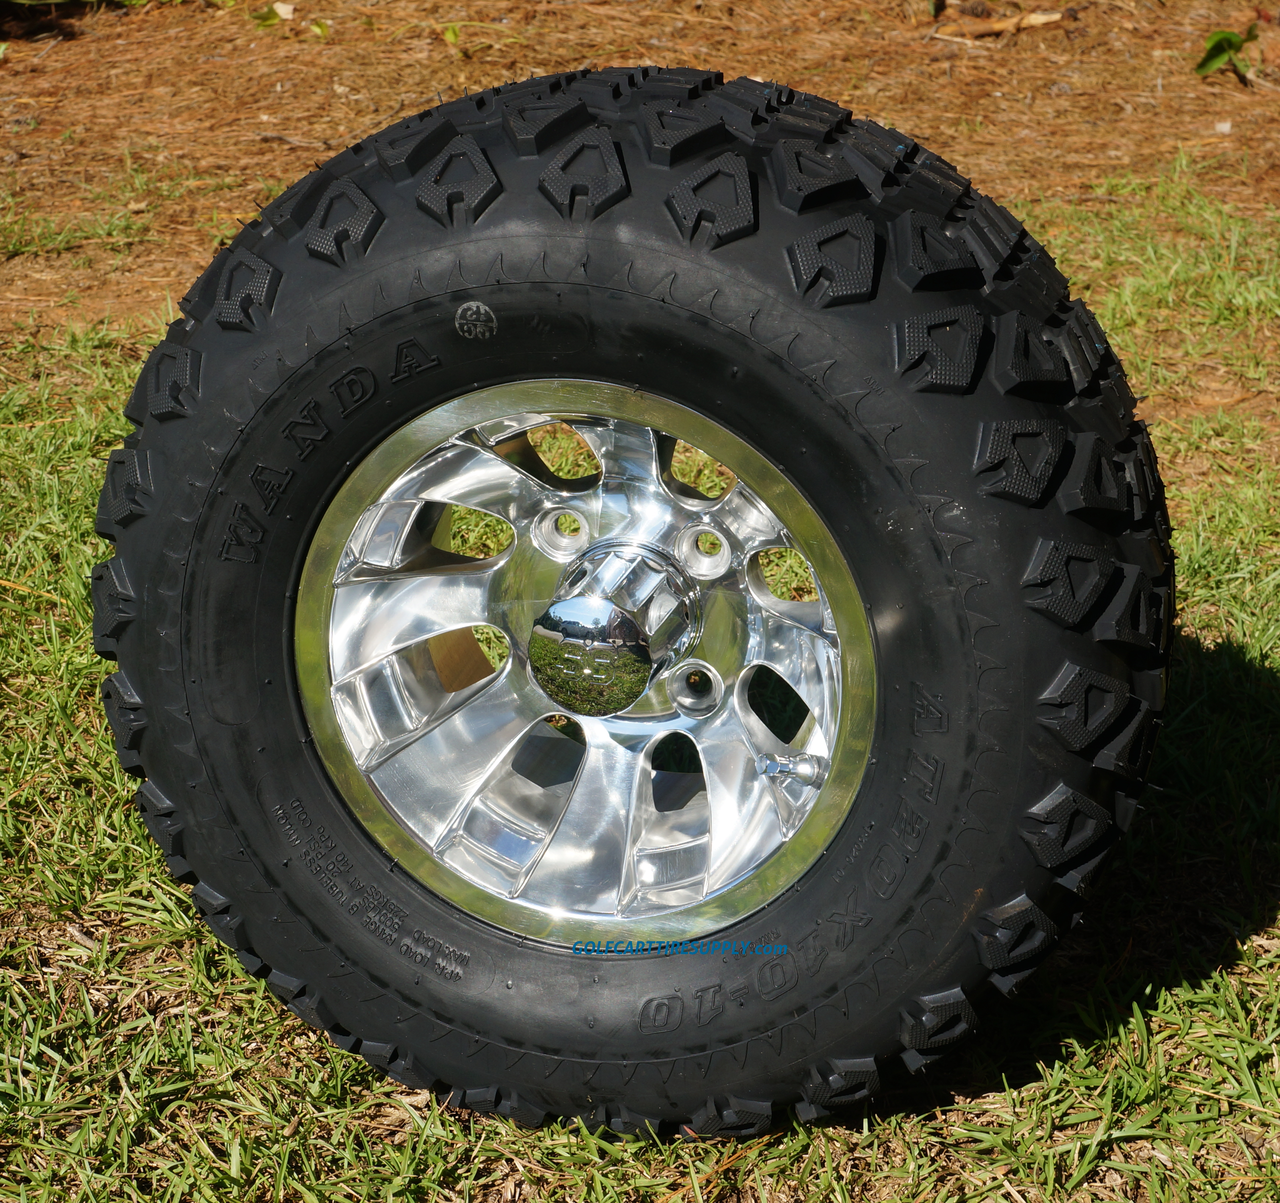 10 Inch Wheels For Golf Cart : Quot silver bullet golf cart wheels and dot all